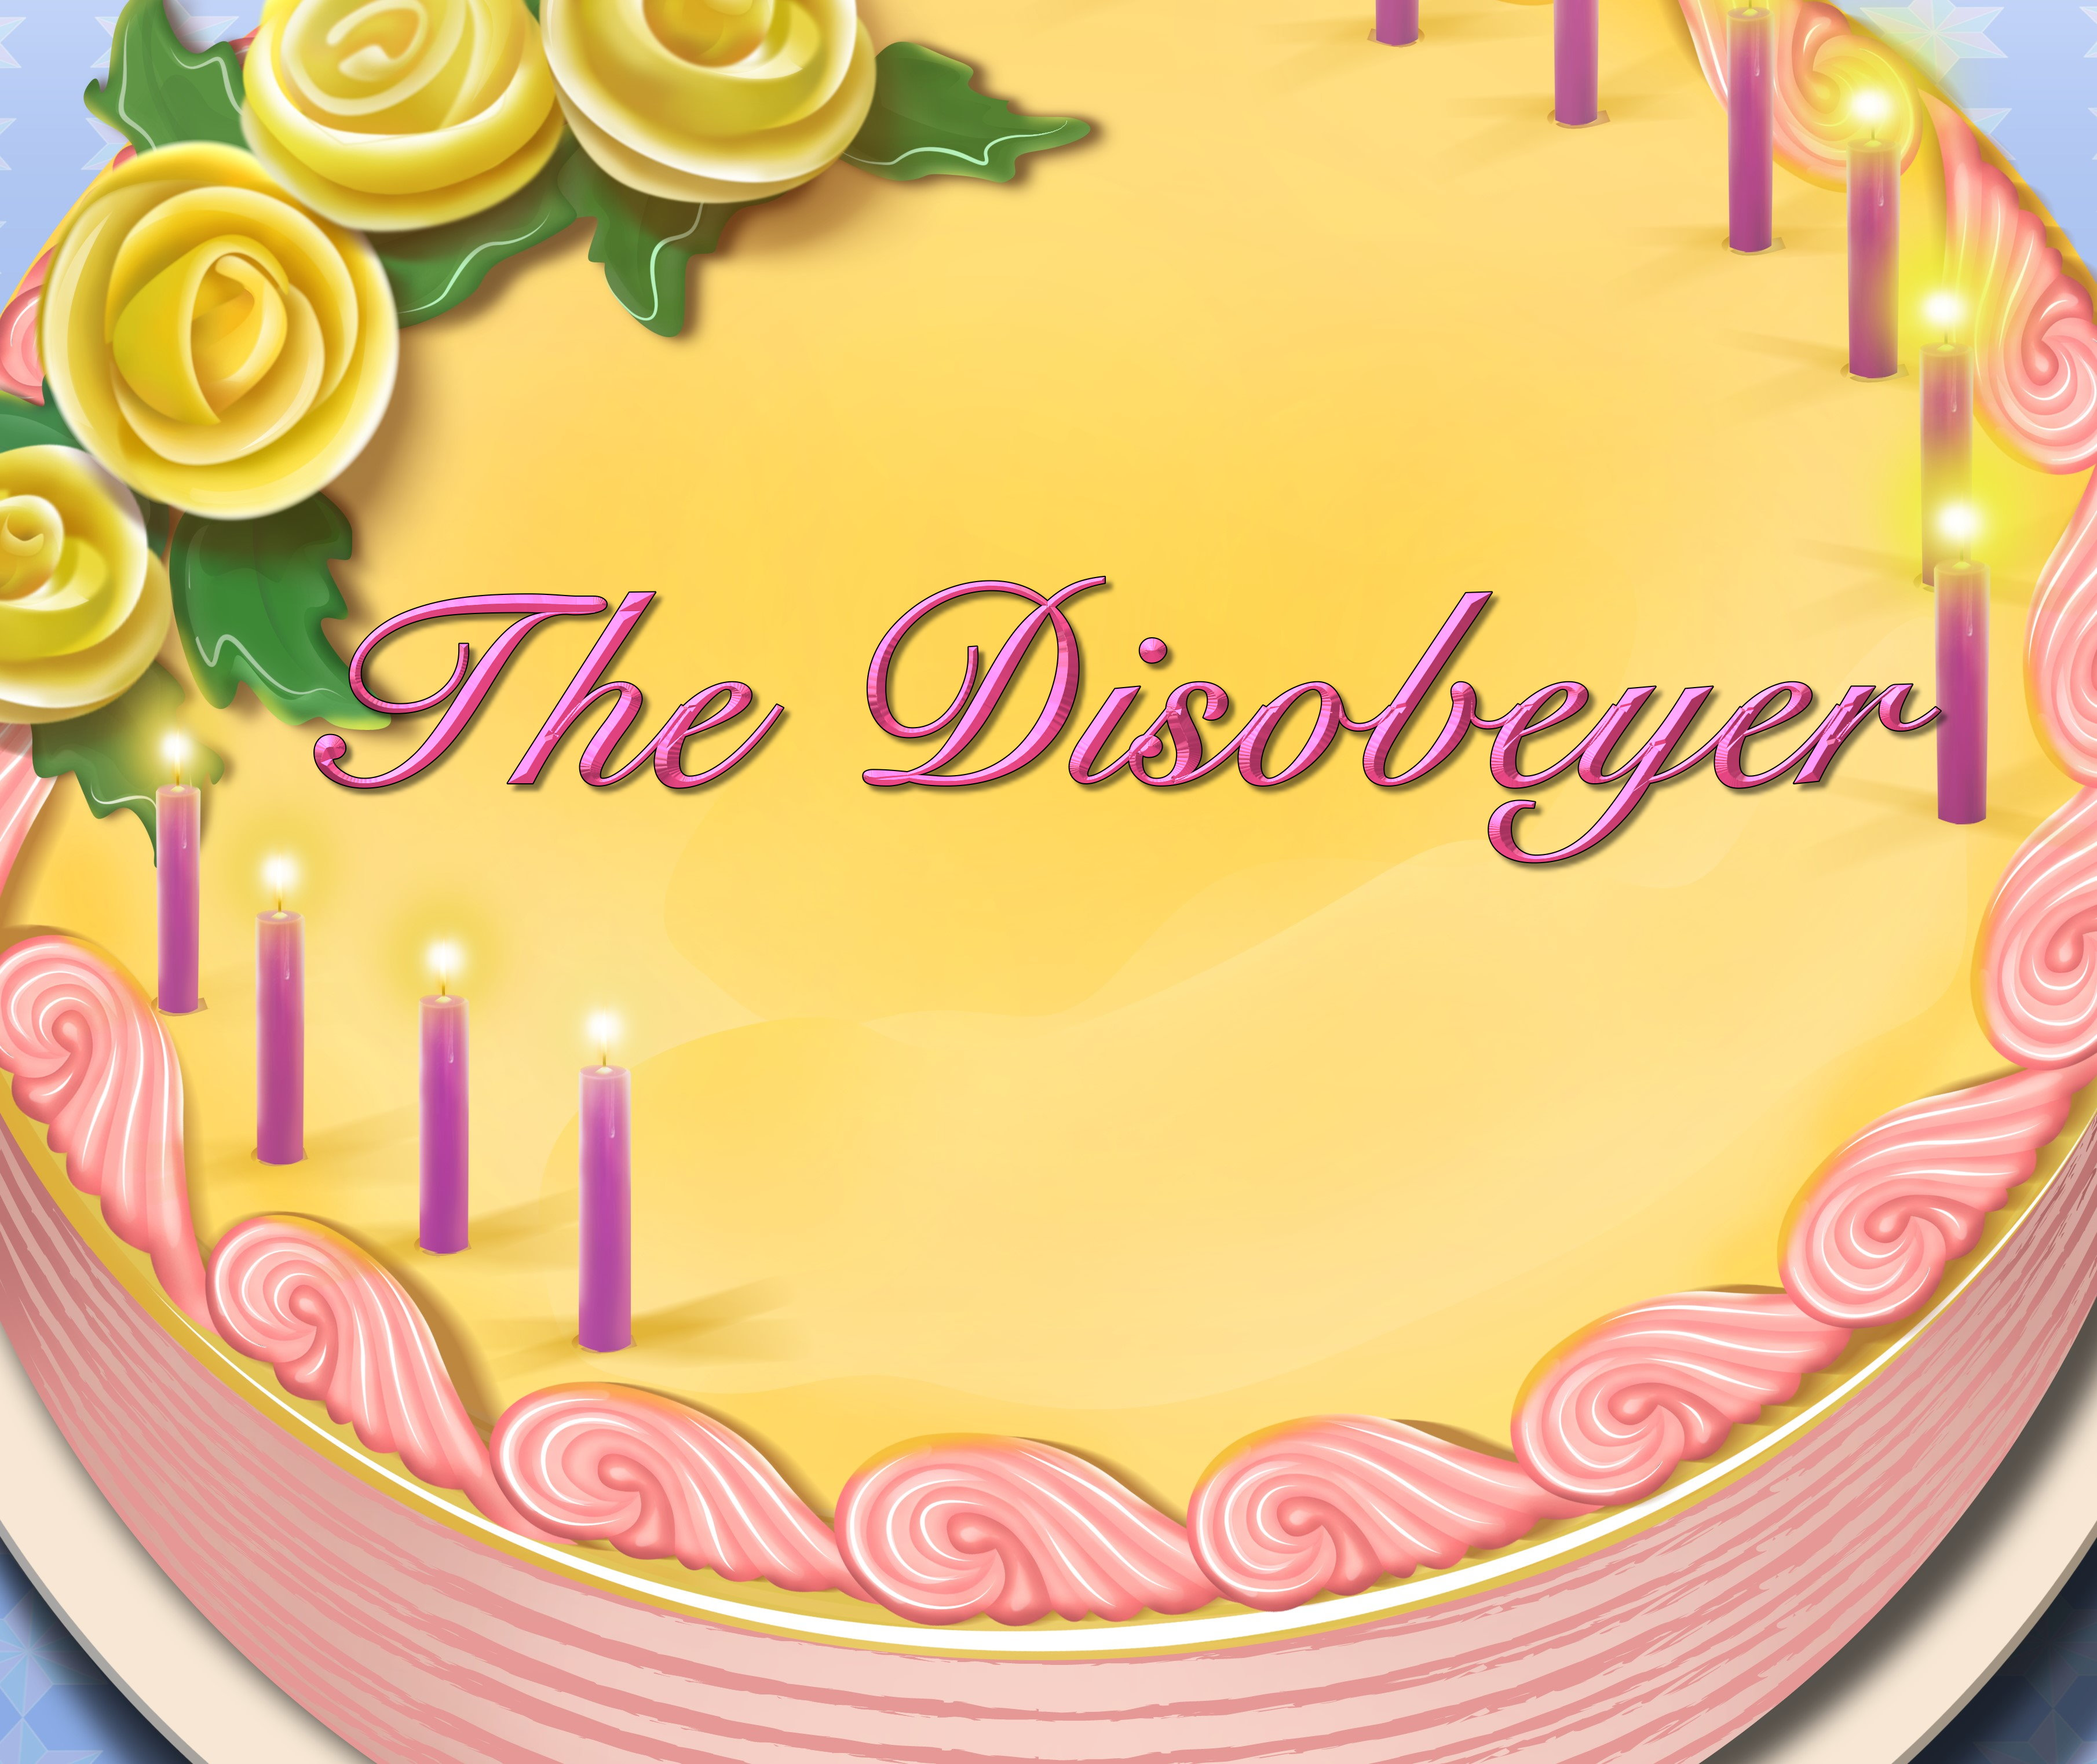 The Disobeyer Birthday Cake